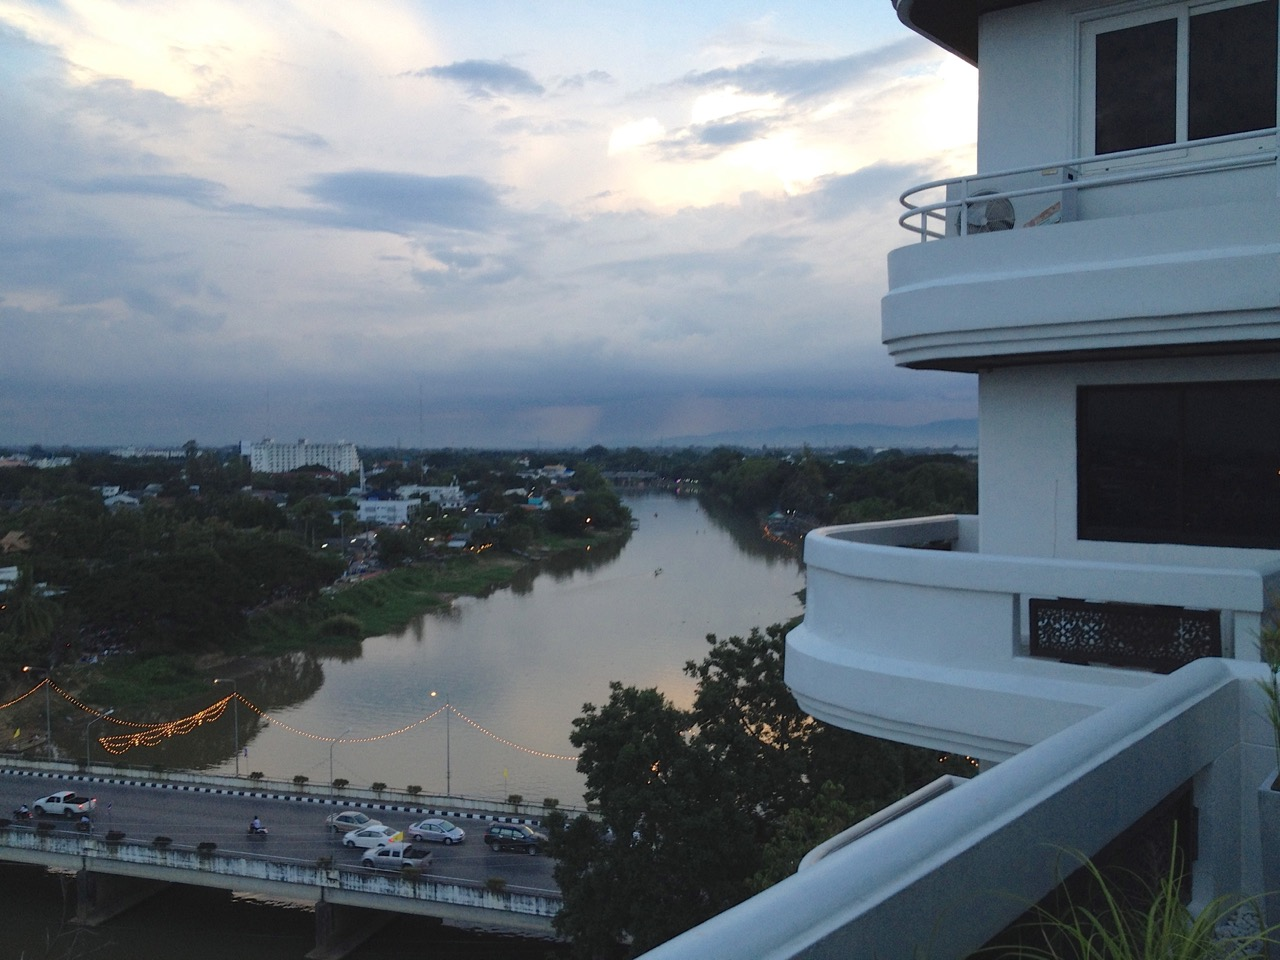 View of Ping river at sunset from our first apartment in Chiang Mai